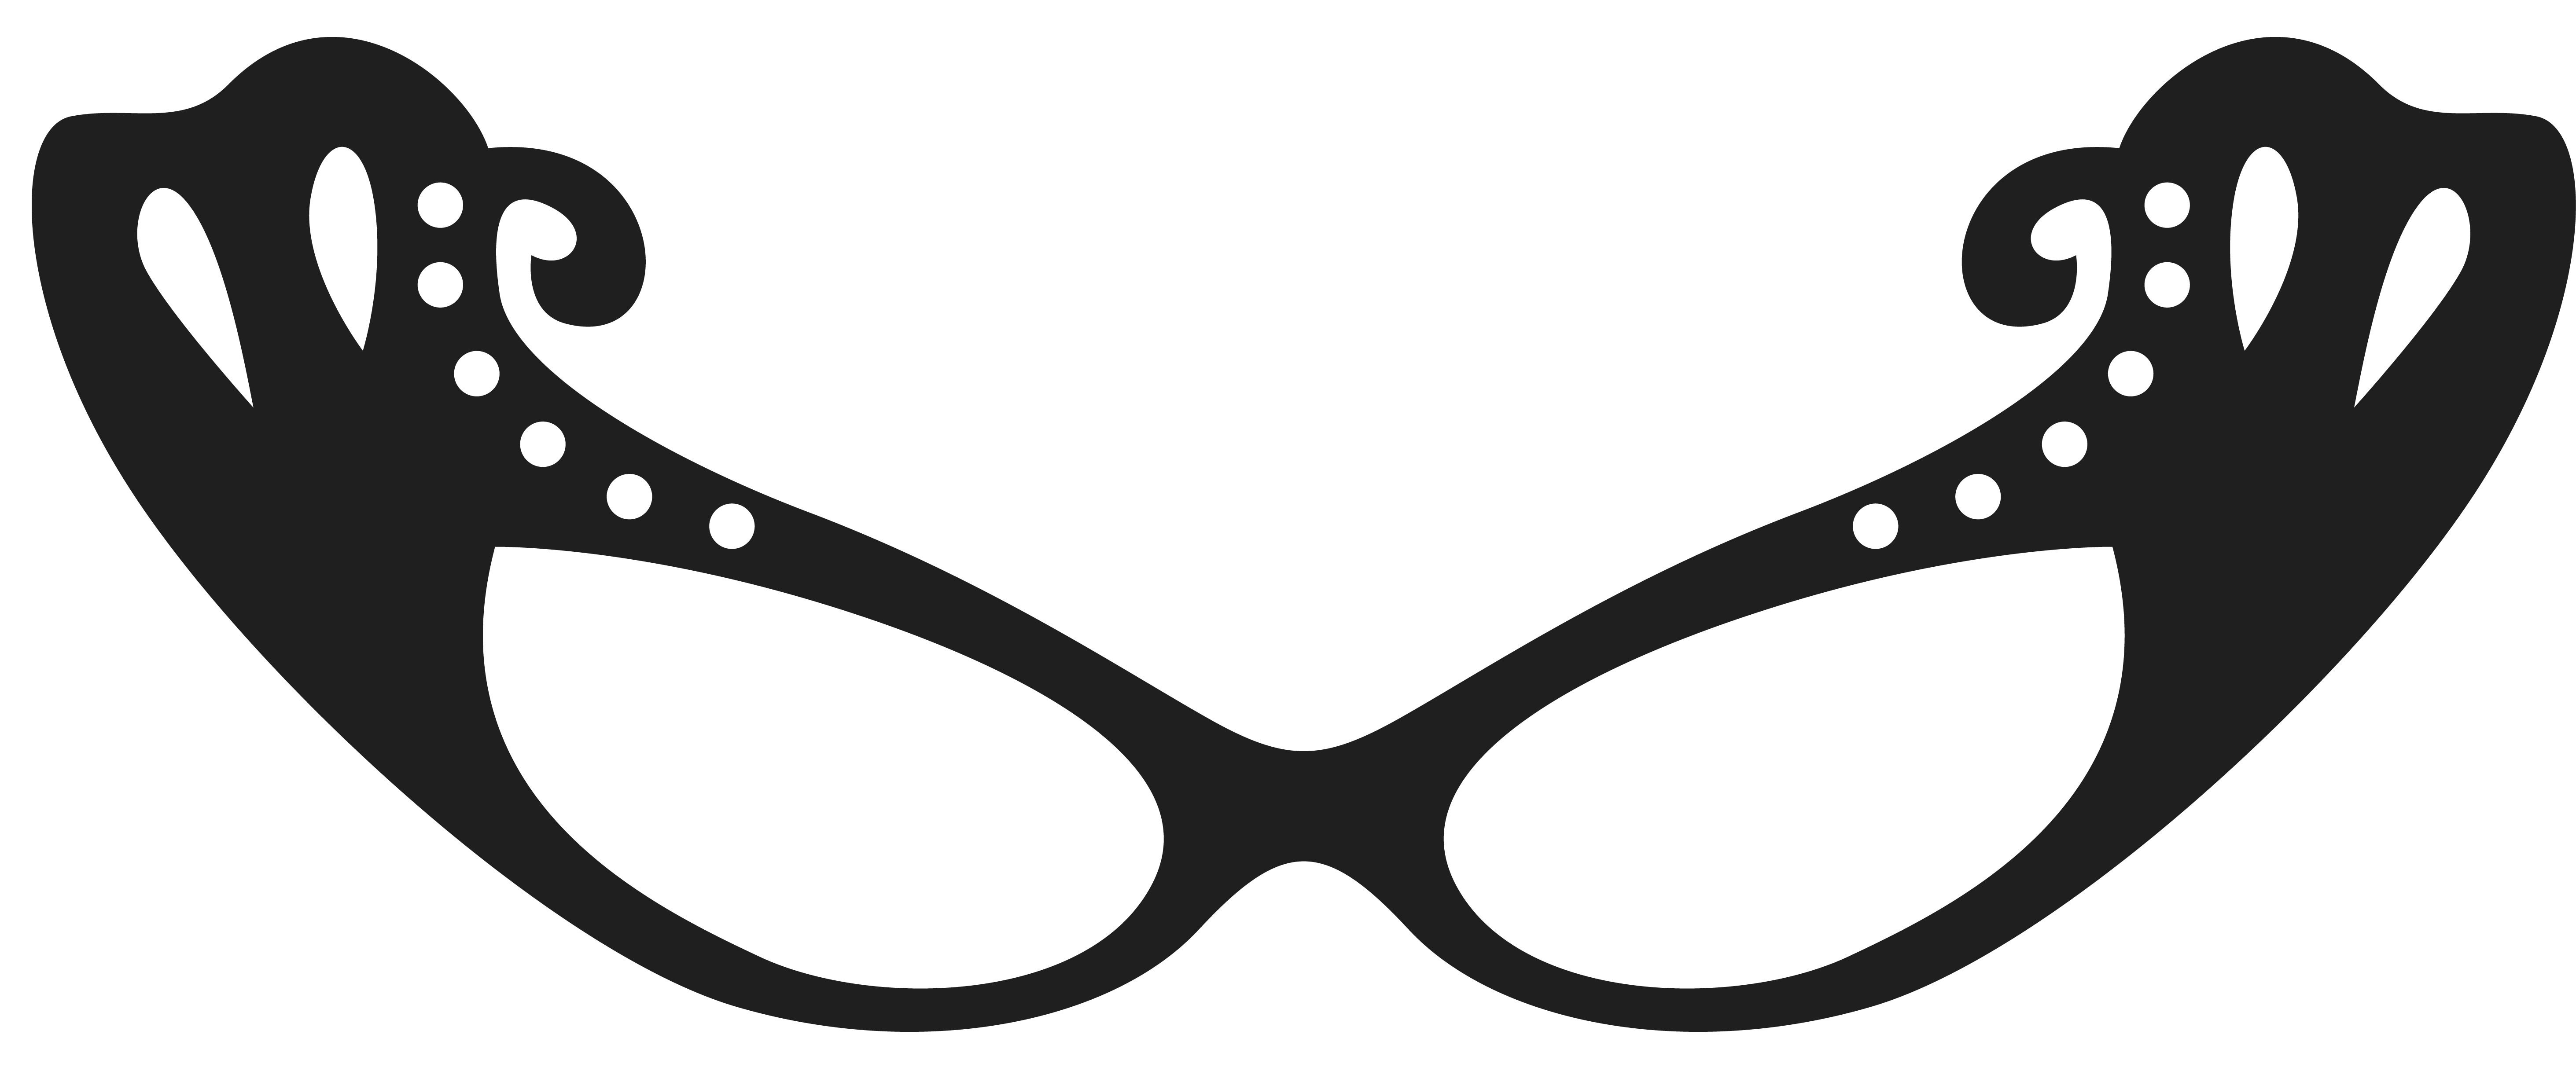 A cat with cool glasses clipart clip black and white library 28+ Collection of Glasses Clipart Png | High quality, free cliparts ... clip black and white library